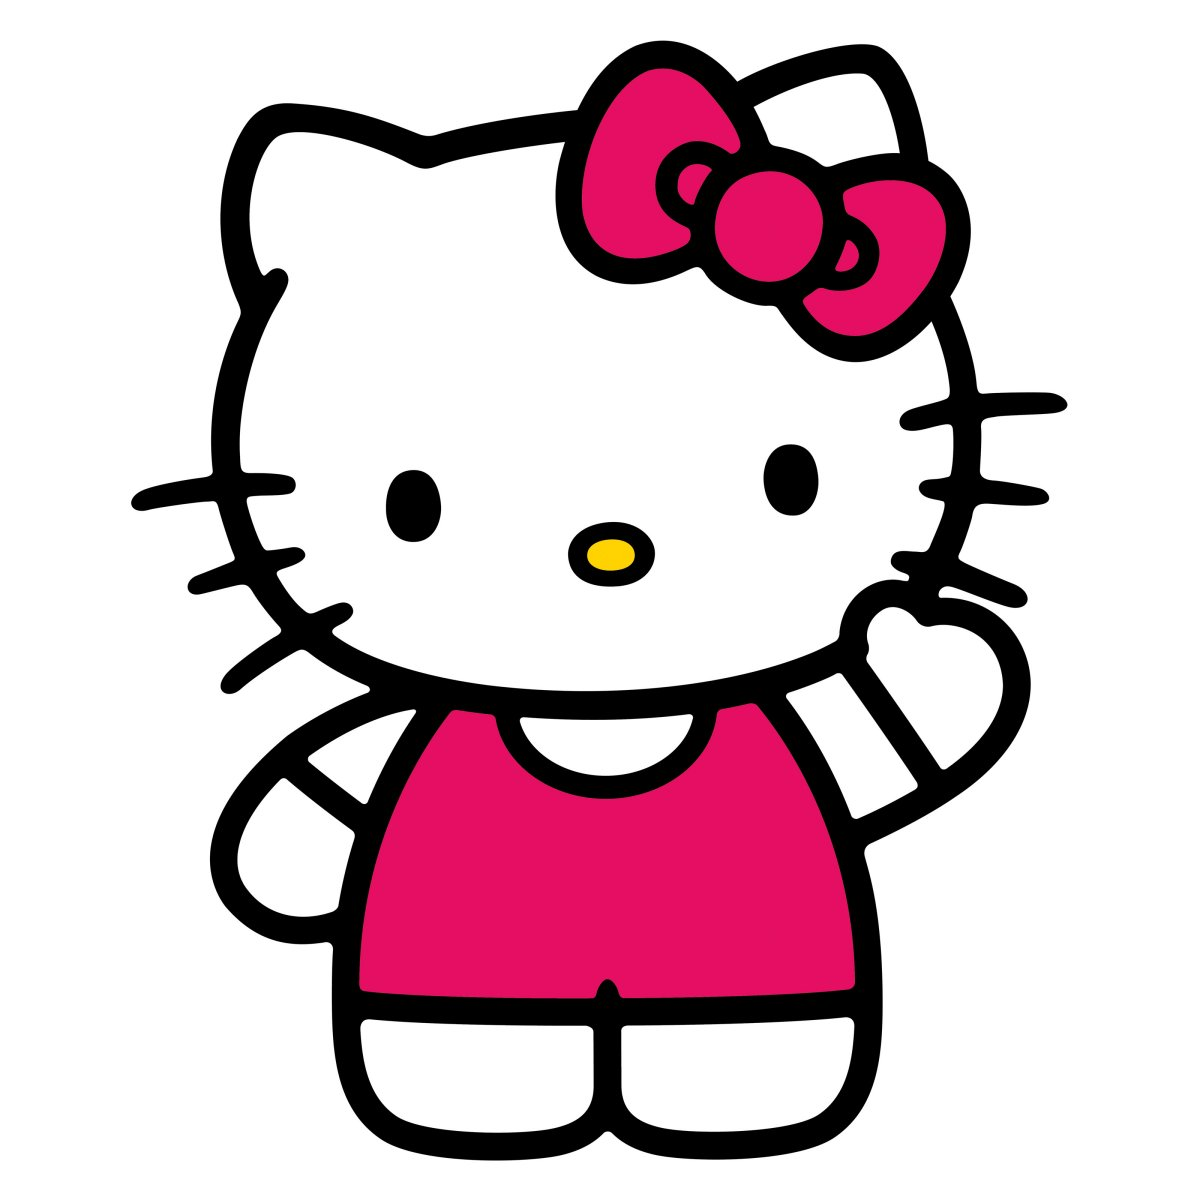 Hello Kitty Is Popular But Is She Evil With Christian Eyes